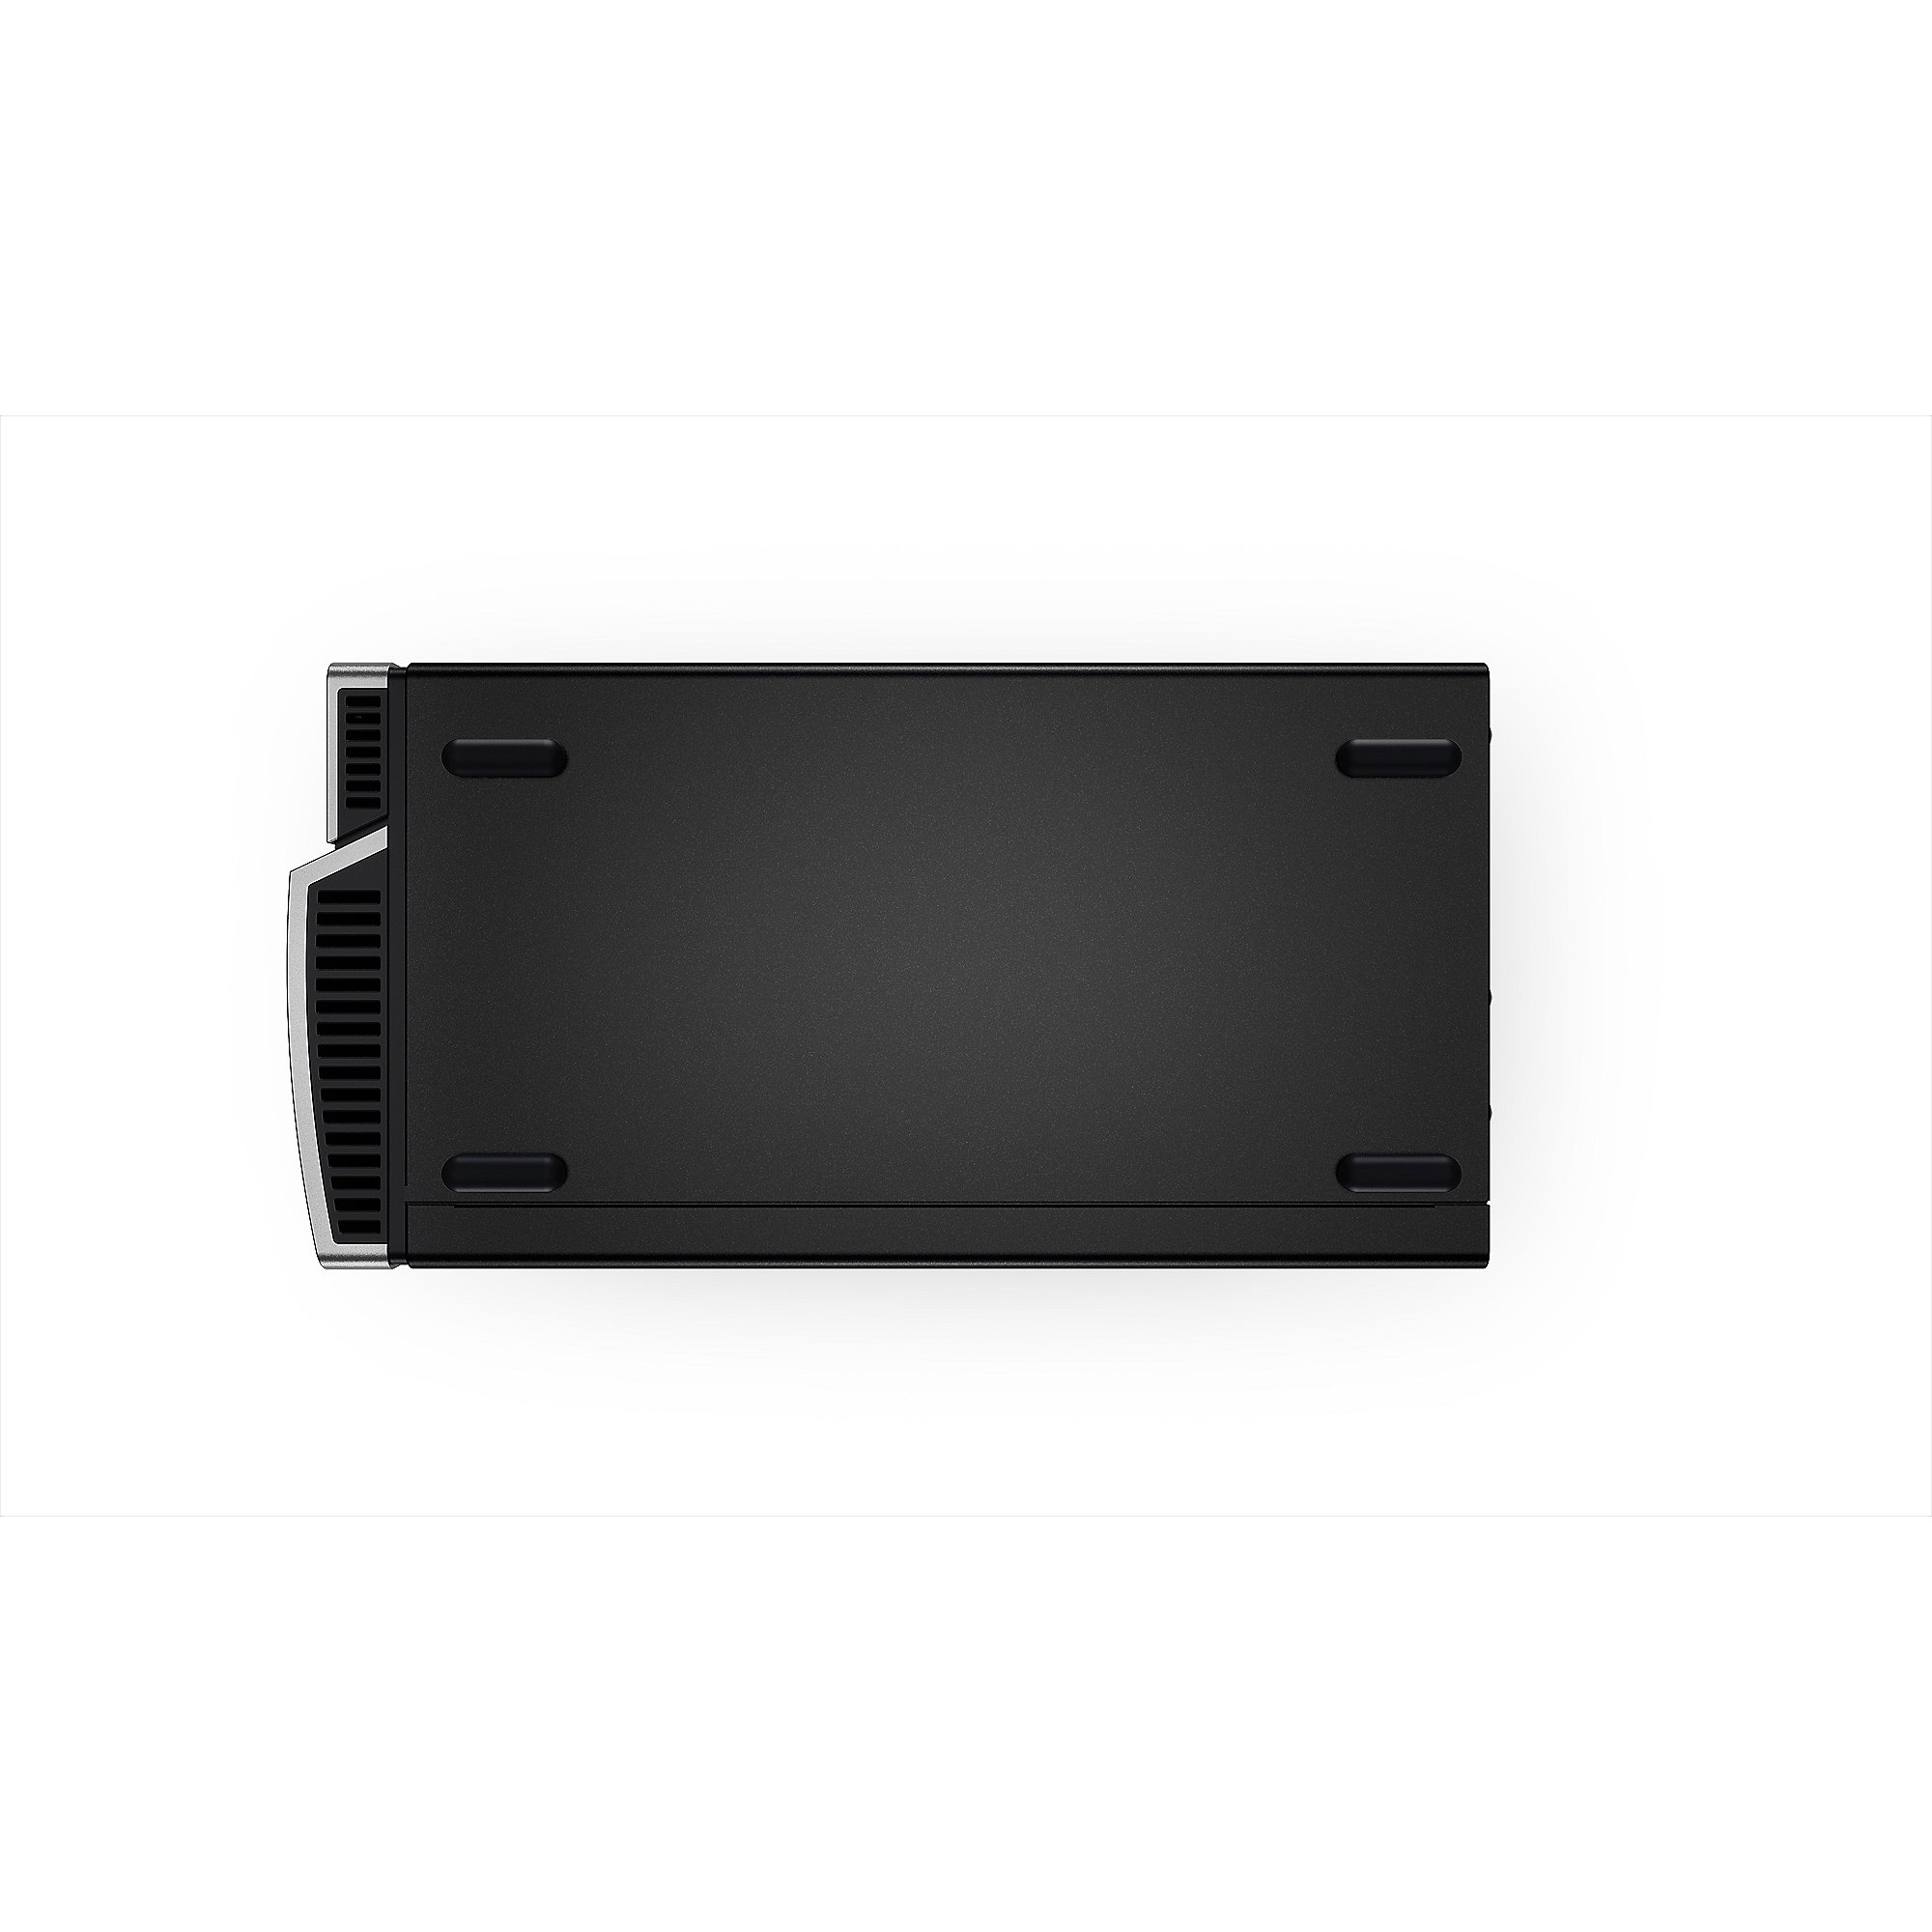 Lenovo Ideacentre 510-15IKL 90G8007PGE i5-7400 8GB/1TB HDD HD 630 W10